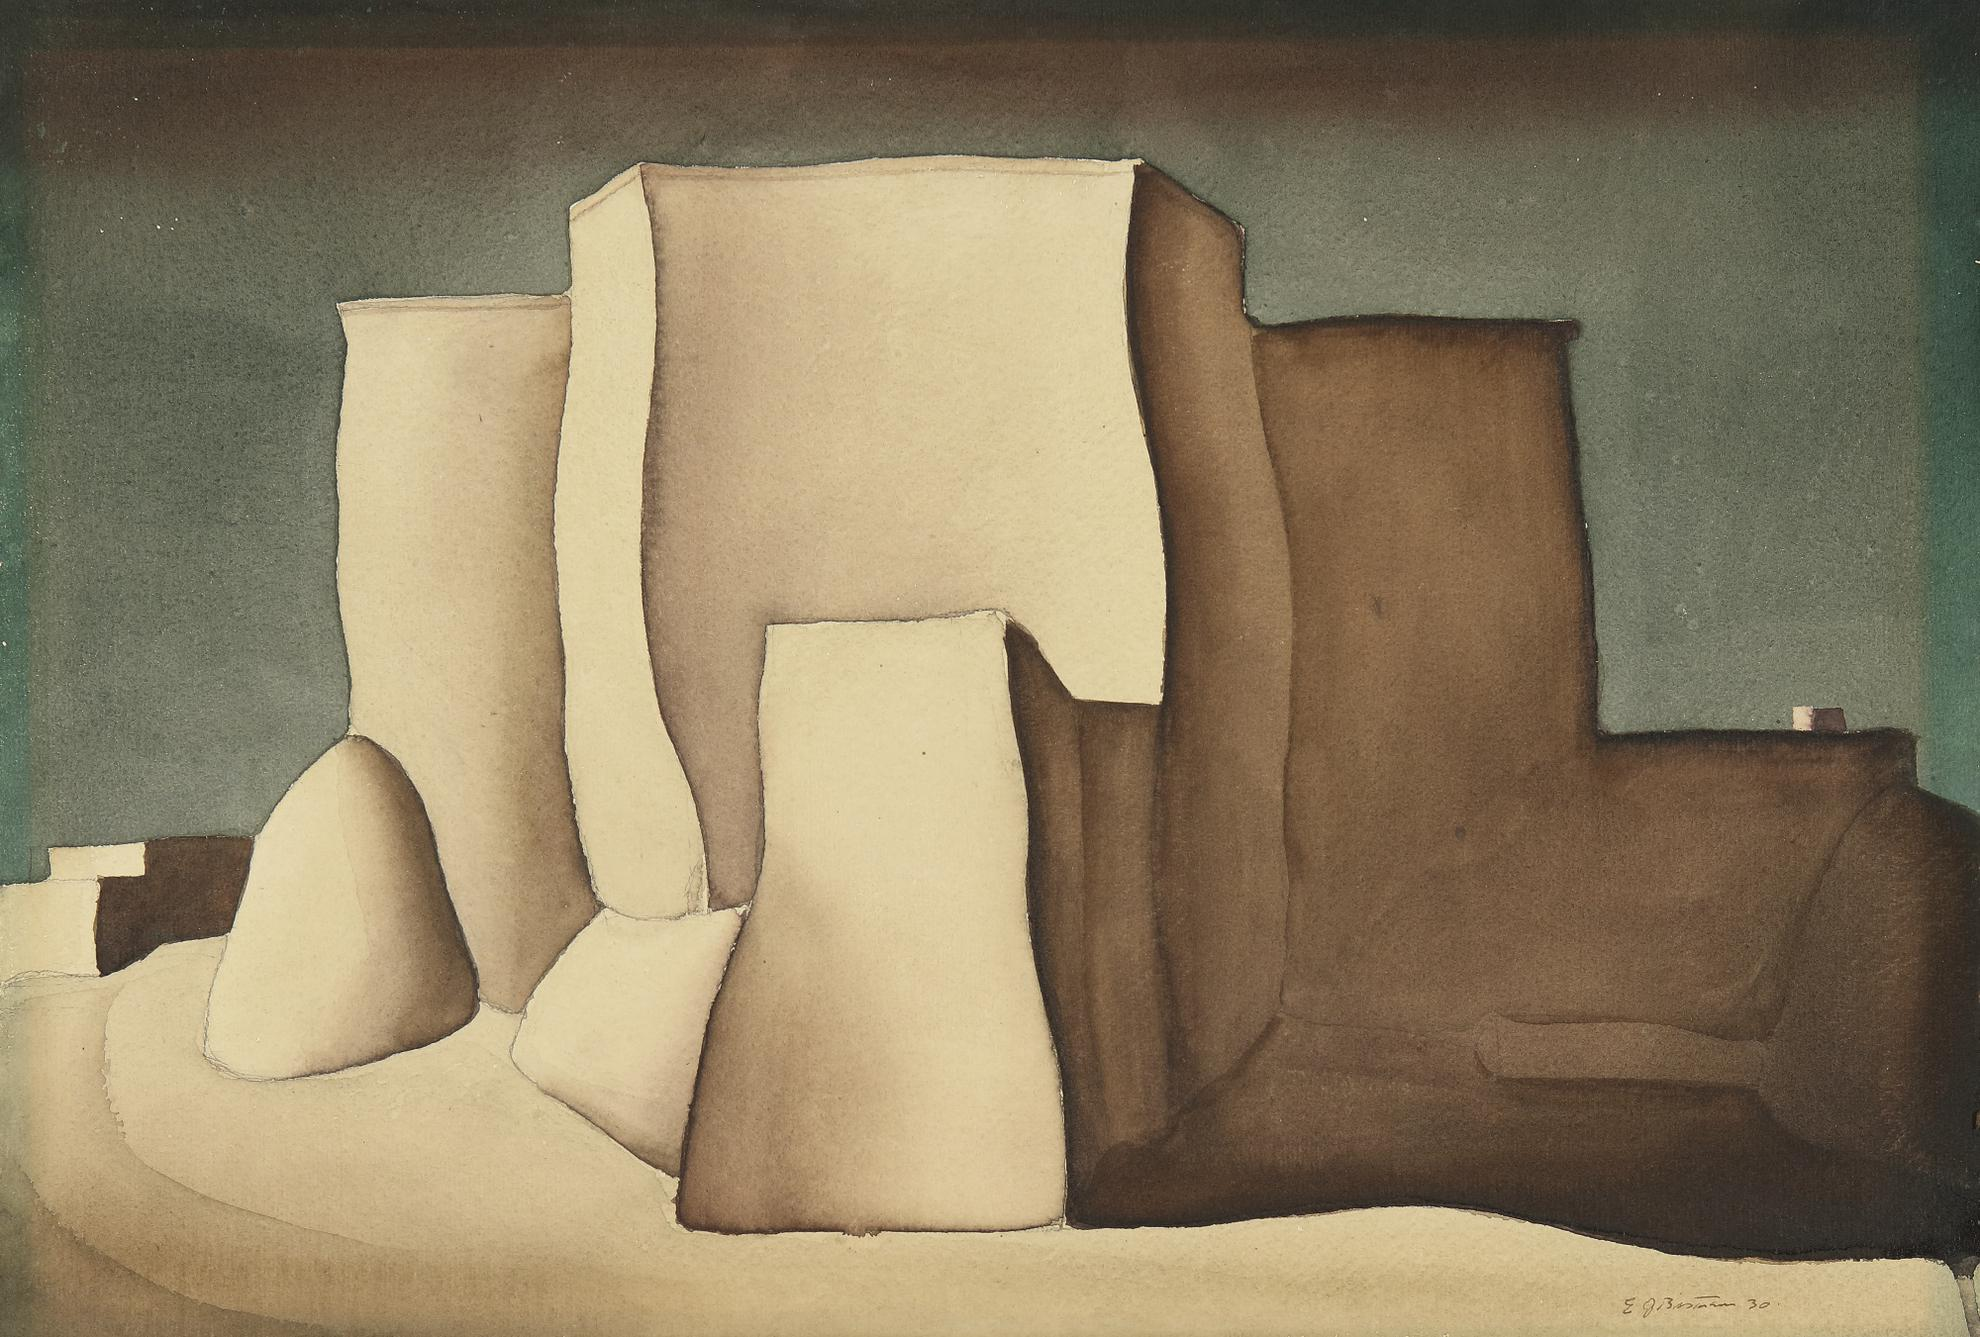 Emil Bisttram - Santa Fe Church-1930